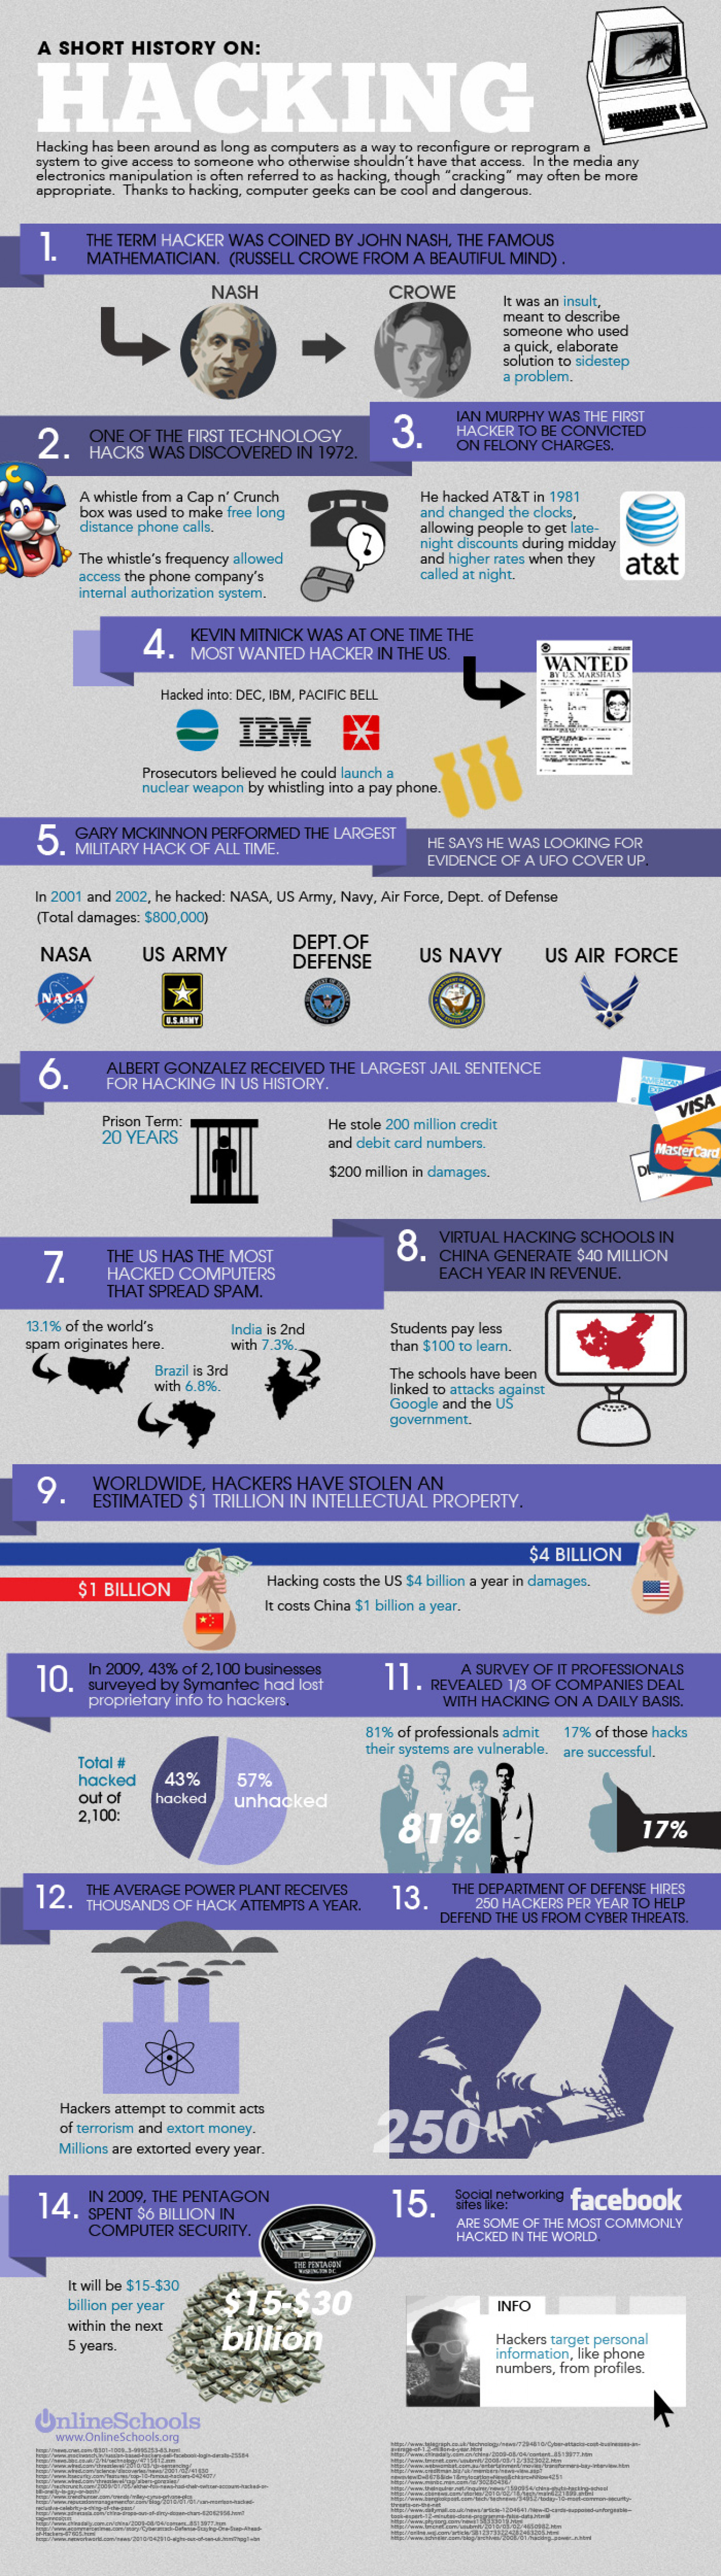 A Short Story On: Hacking Infographic